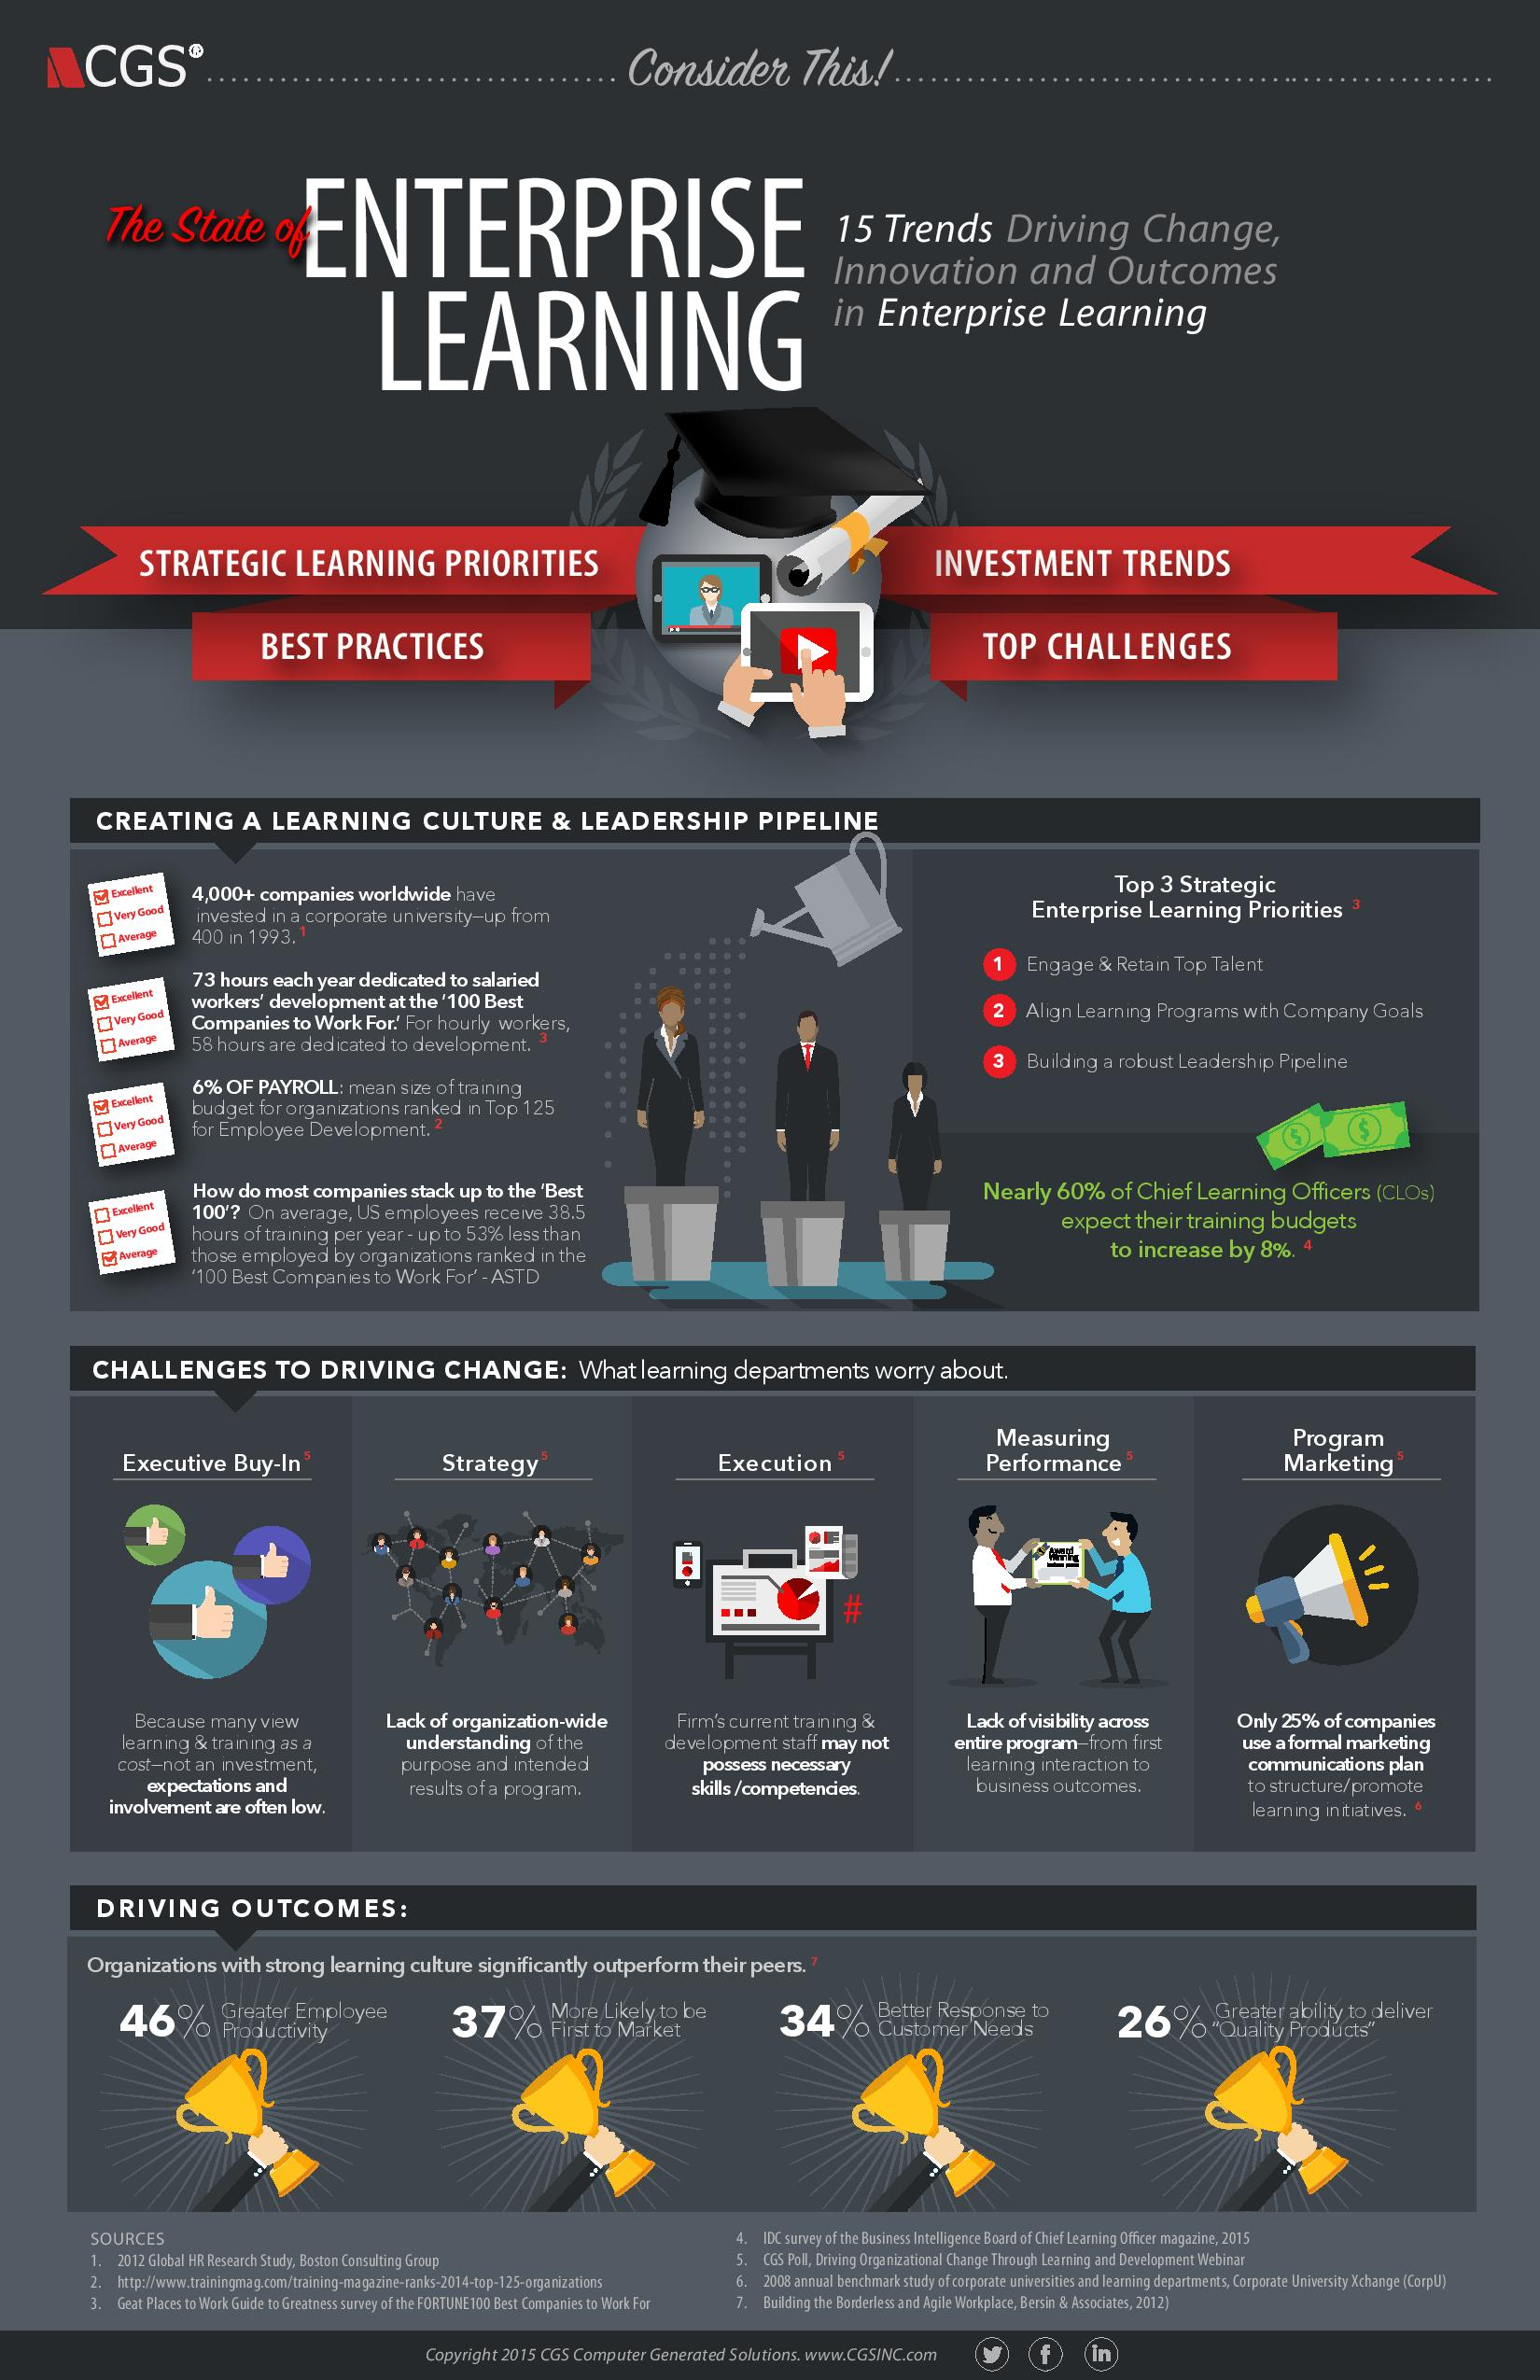 CGS, infographic, learning, enterprise